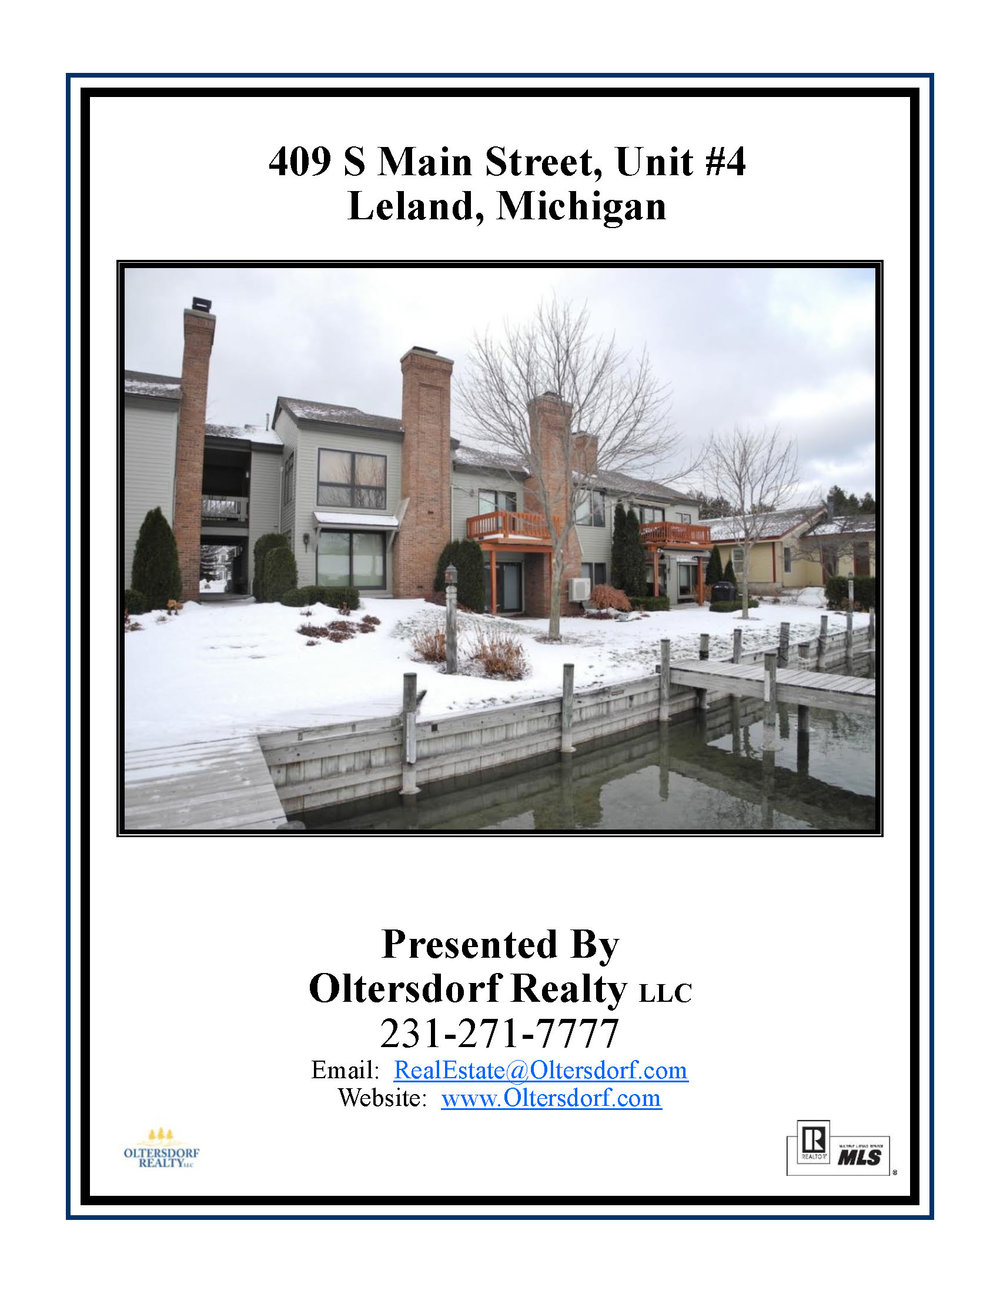 409 S Main Street Unit #4, Leland Marketing Packet - For Sale by Oltersdorf Realty LLC (1).jpg